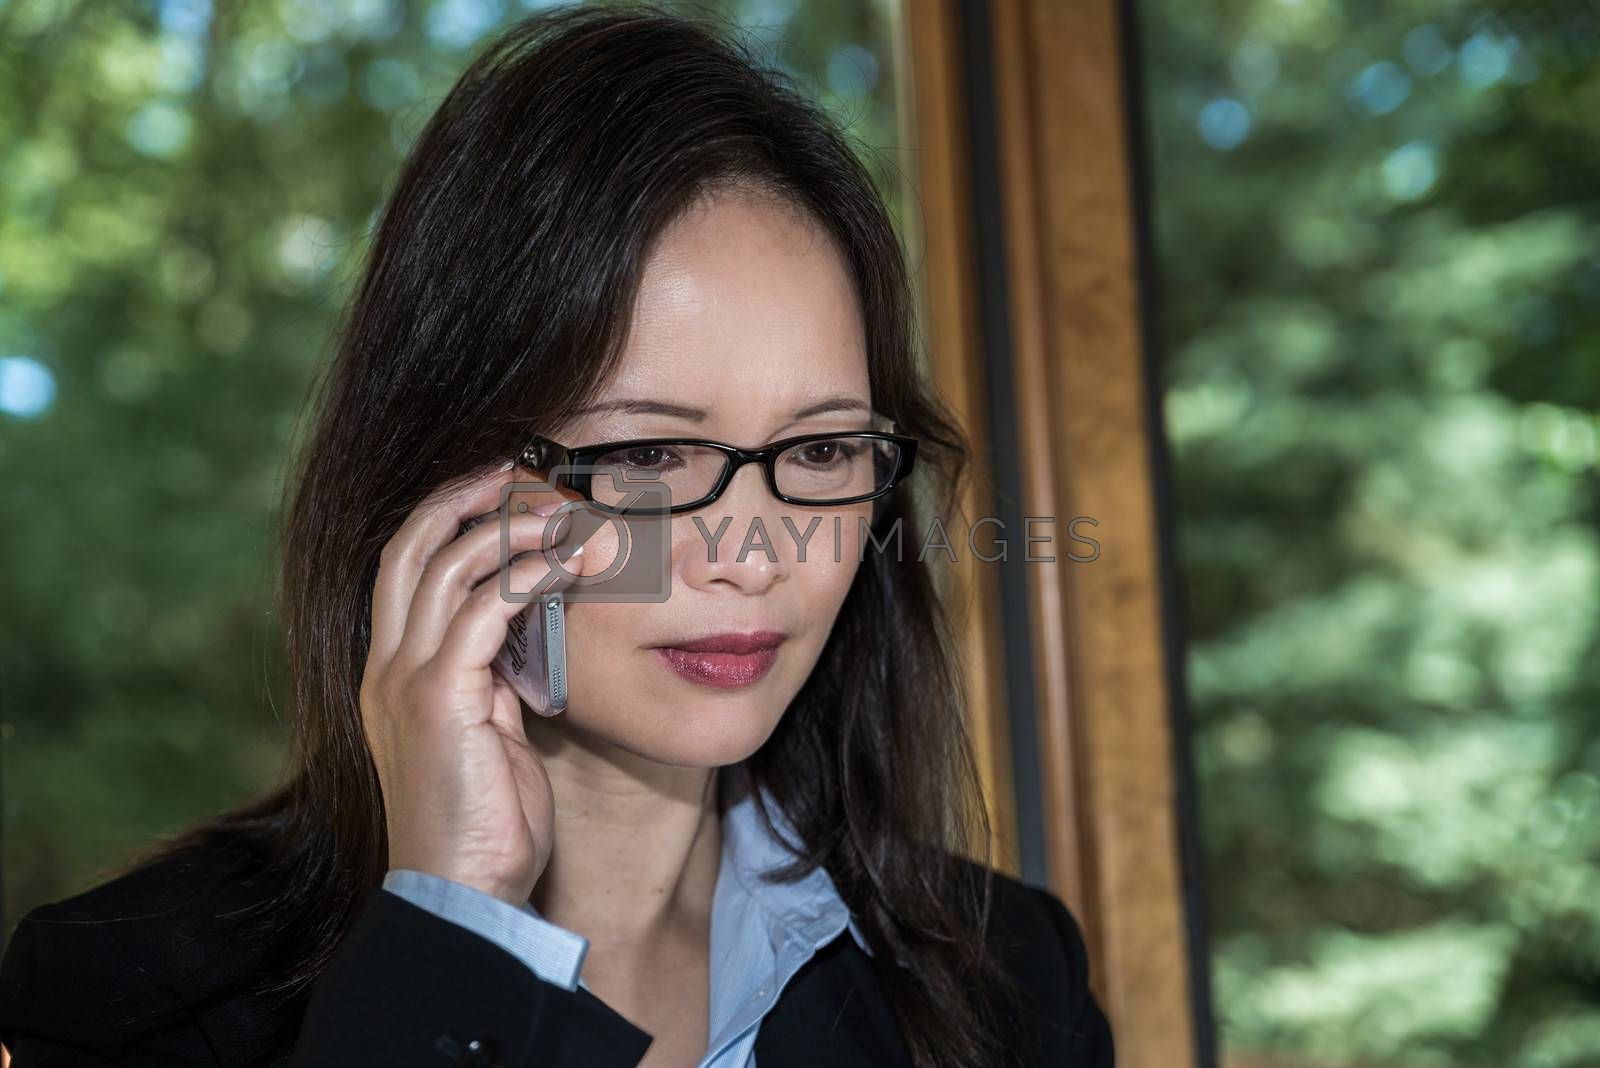 Woman in business suit speaking on a cellphone in front of a window